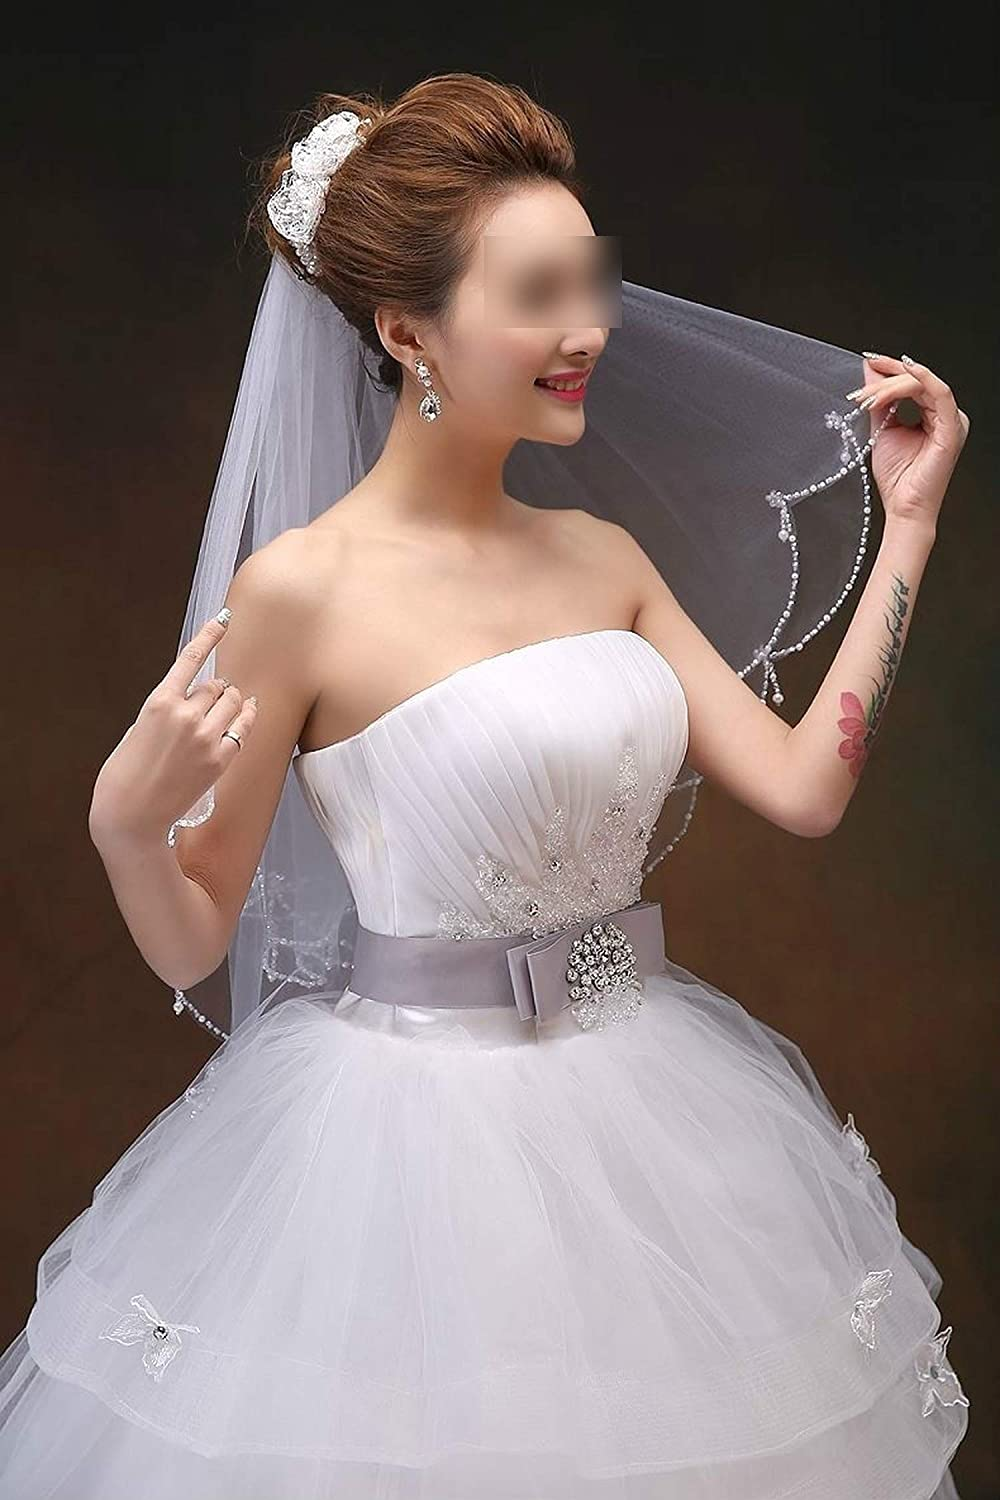 White//Ivory Wedding Veil Velo Voile Mariage 1.5 M Bridal Veil Wedding Vail,White,150cm